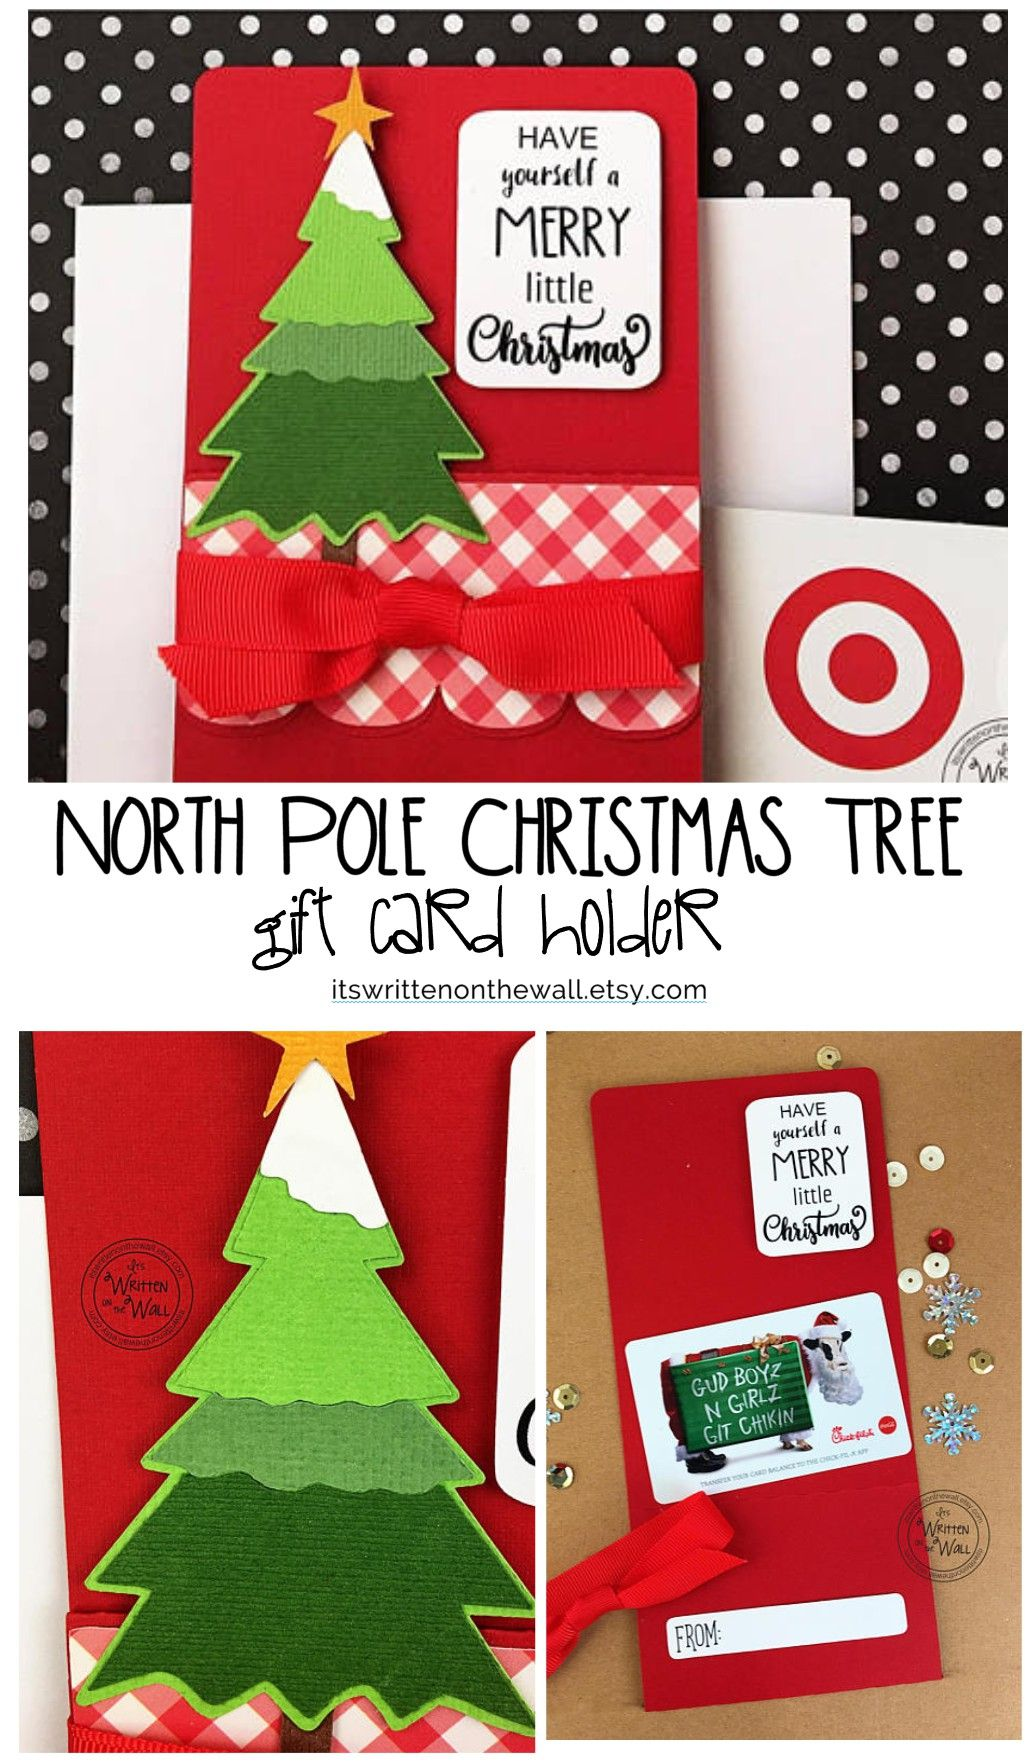 North Pole Christmas Tree Gift Card Holder Teacher Appreciation Employee Gift Ca Christmas Tree Gift Card Holder Creative Diy Gifts Christmas Tree With Gifts